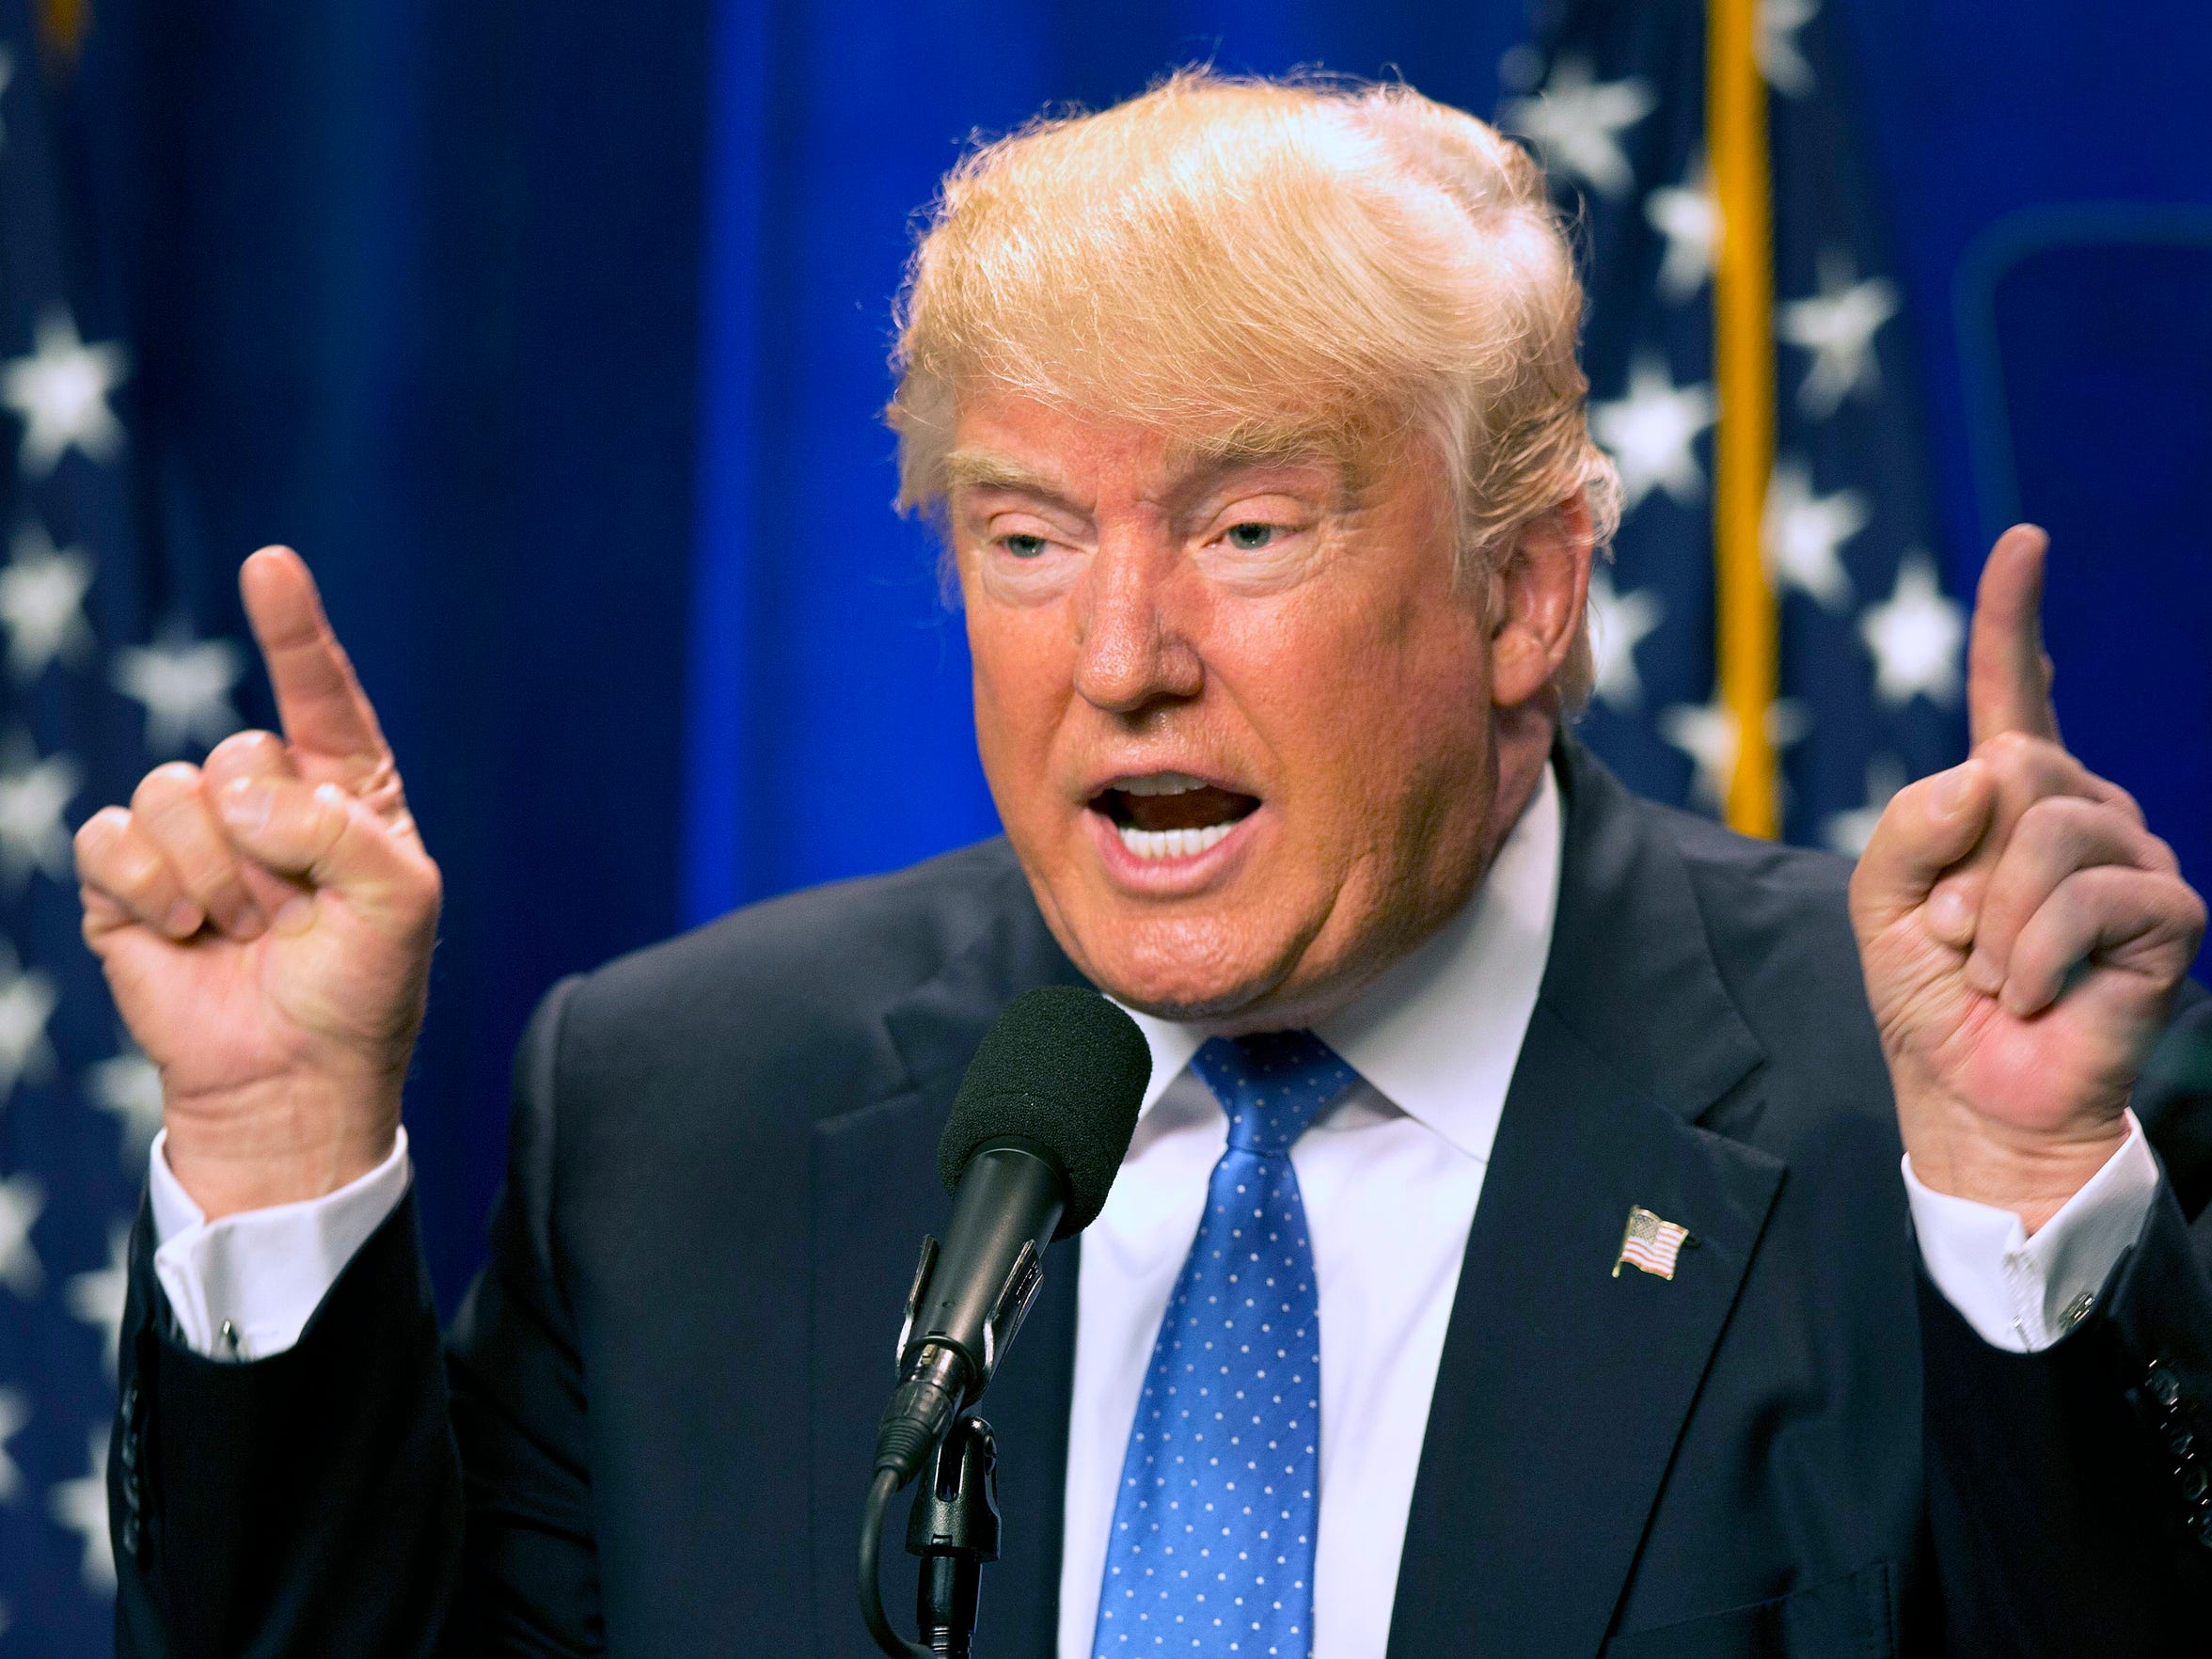 Republican presidential candidate Donald Trump speaks at Saint Anselm College in Manchester, N.H., in June.